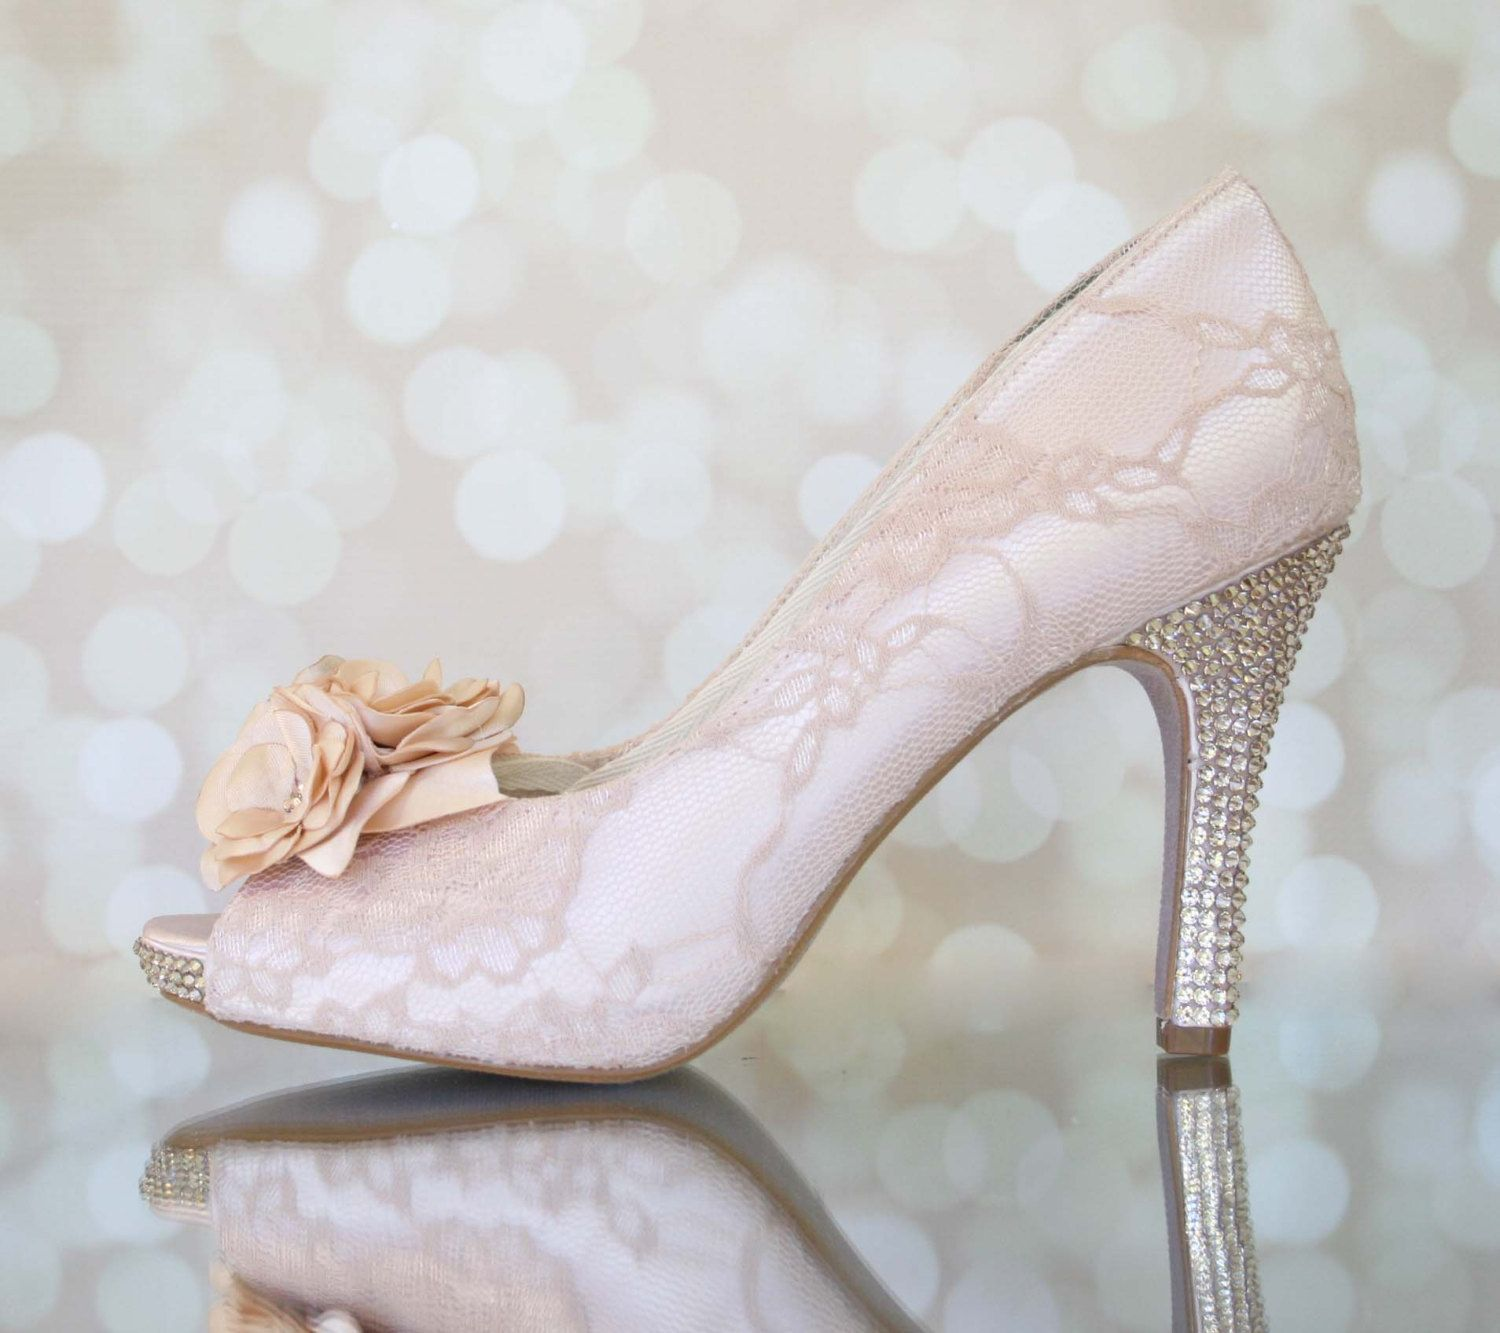 Blush Wedding Shoes For Bride Crystal Heels Lace Wedding Shoes